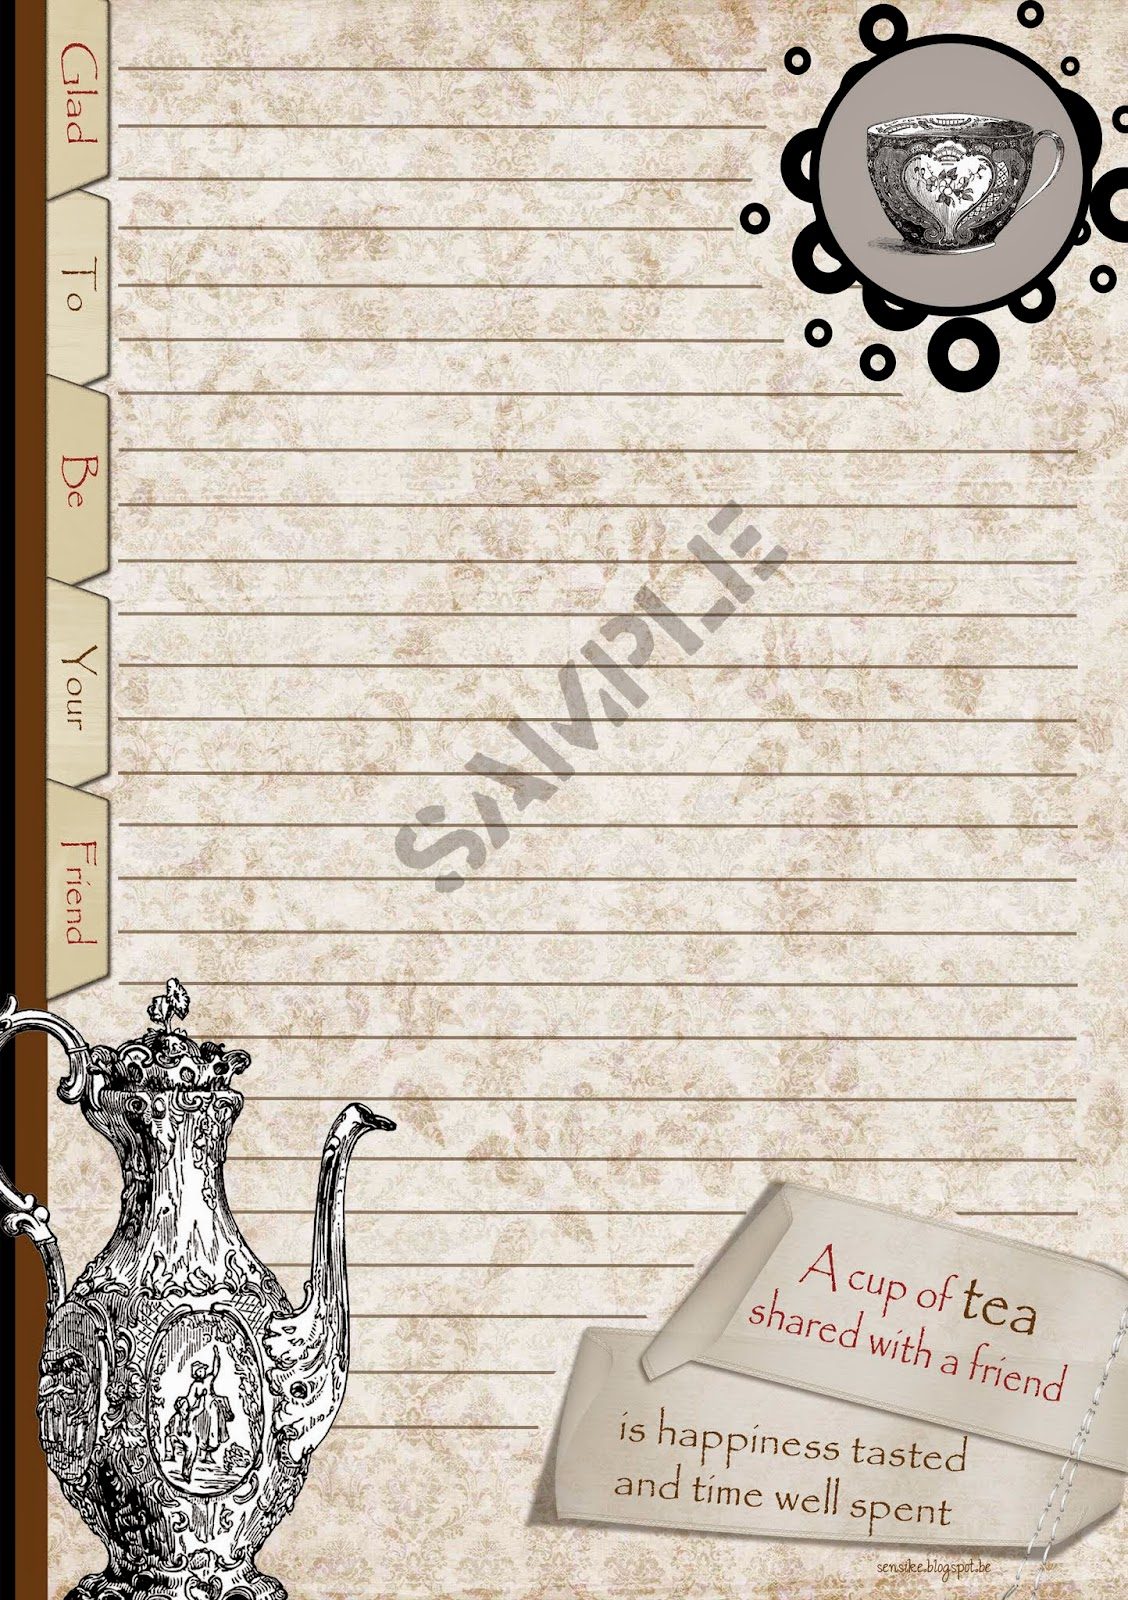 briefpapier thee, stationery tea